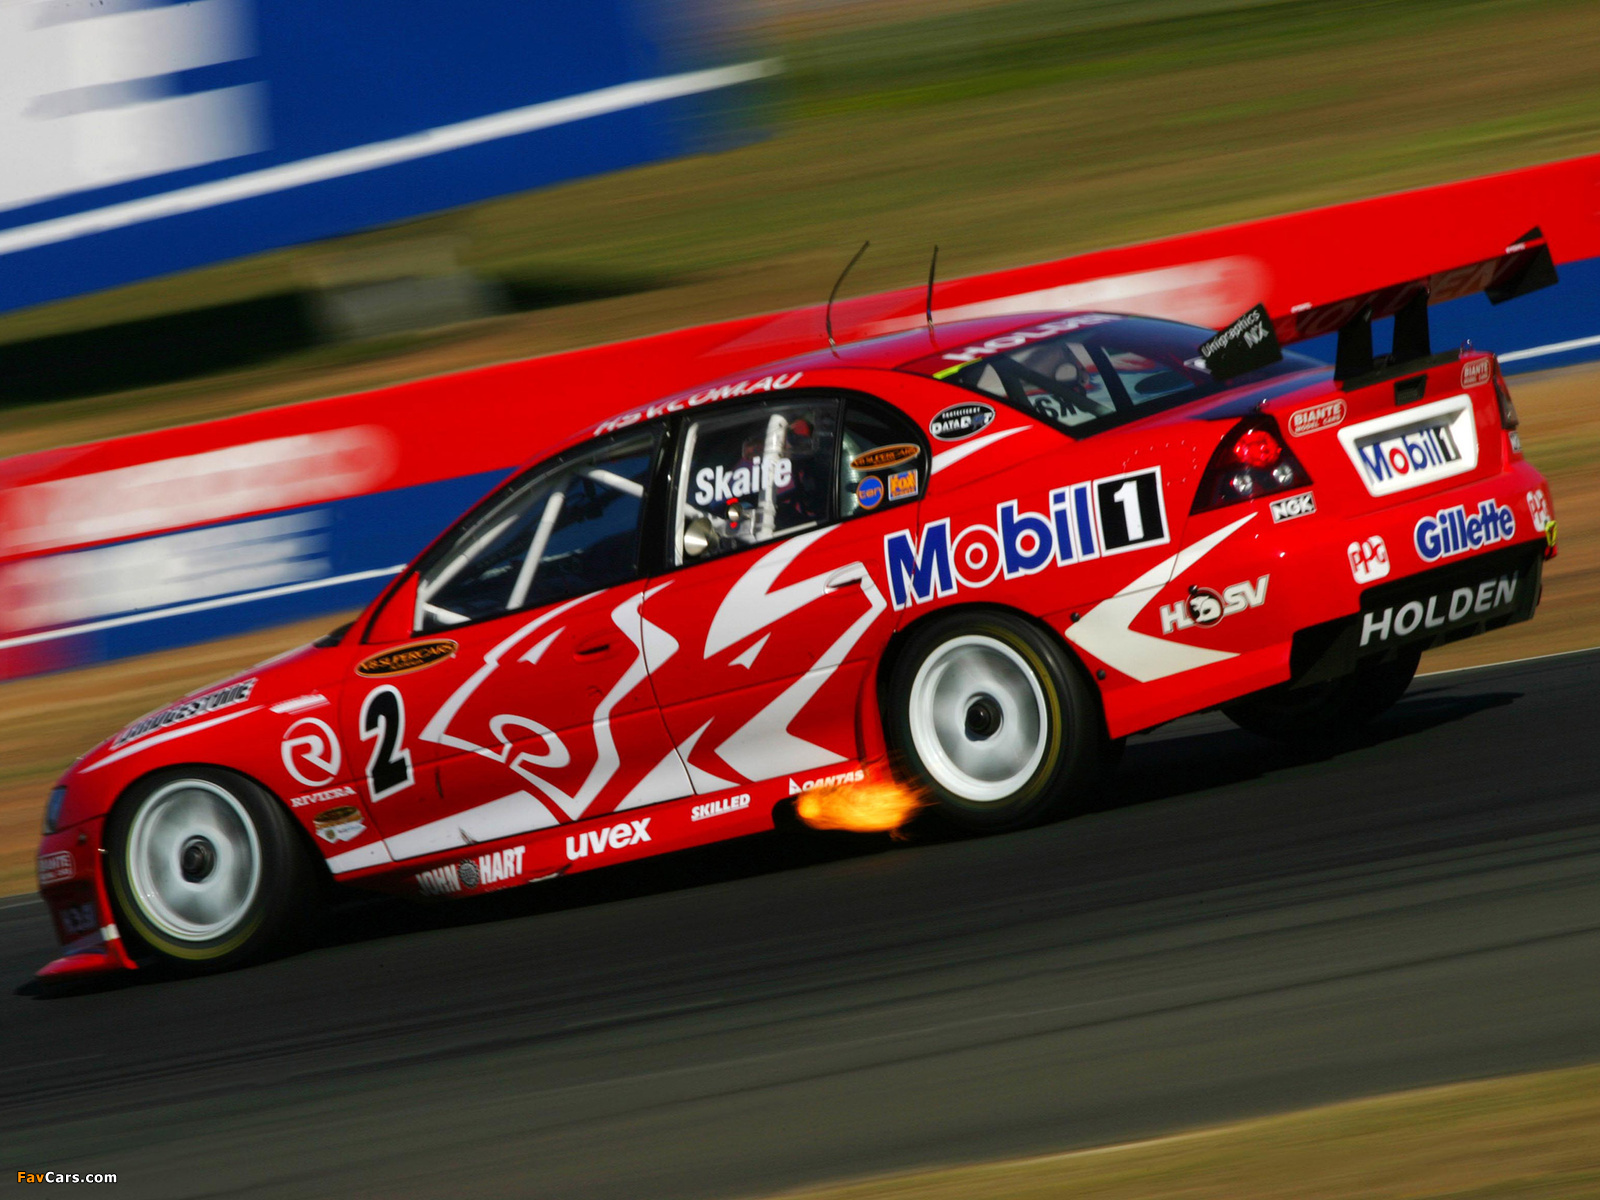 Holden Vz Commodore V8 Supercar 2005 06 Wallpapers 1600x1200